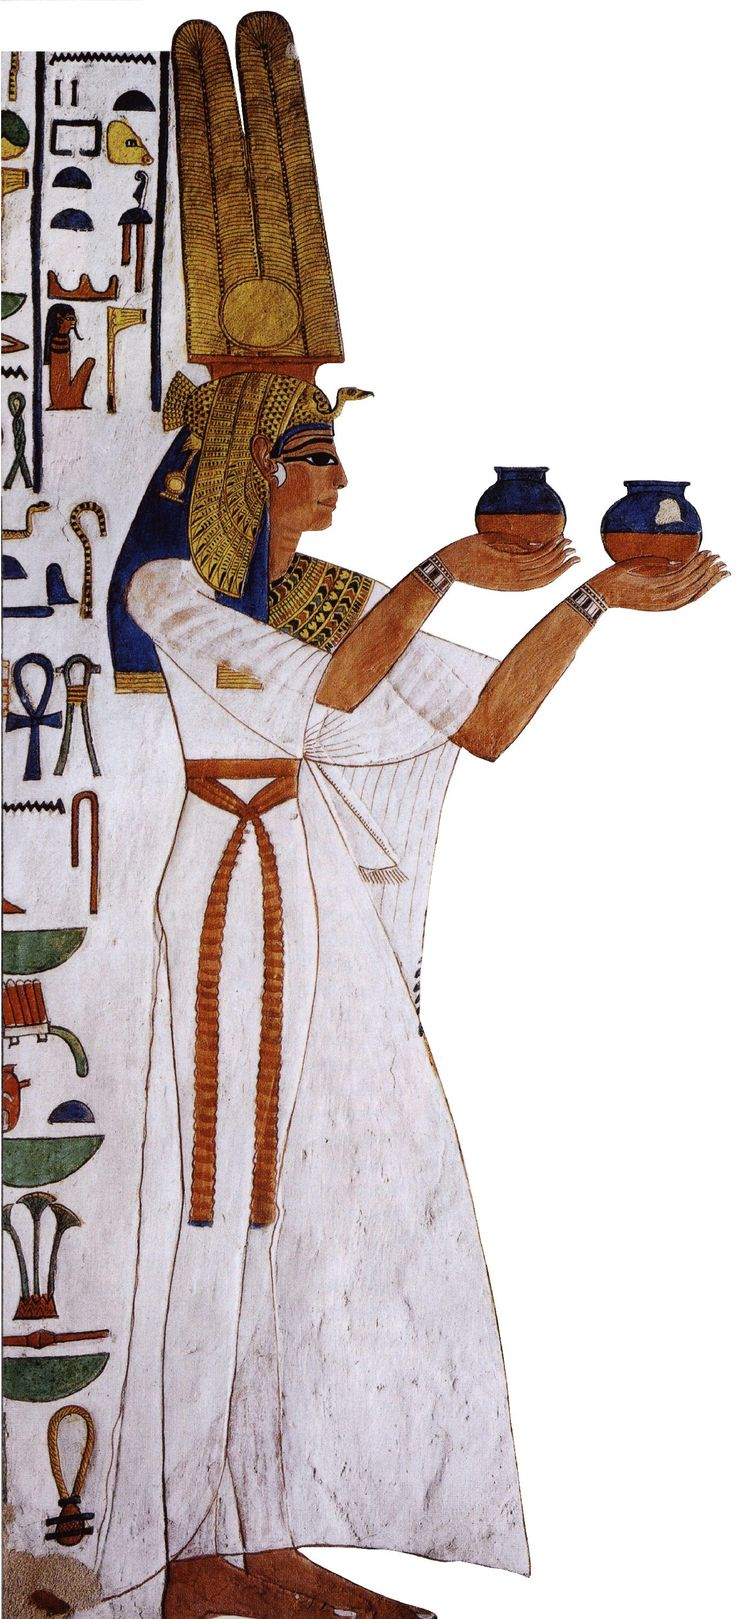 Tomb wall depicting Queen Nefertari, the great royal wife of Pharaoh Rameses II.  19th Dynasty of Egypt. c. 13 centure BCE